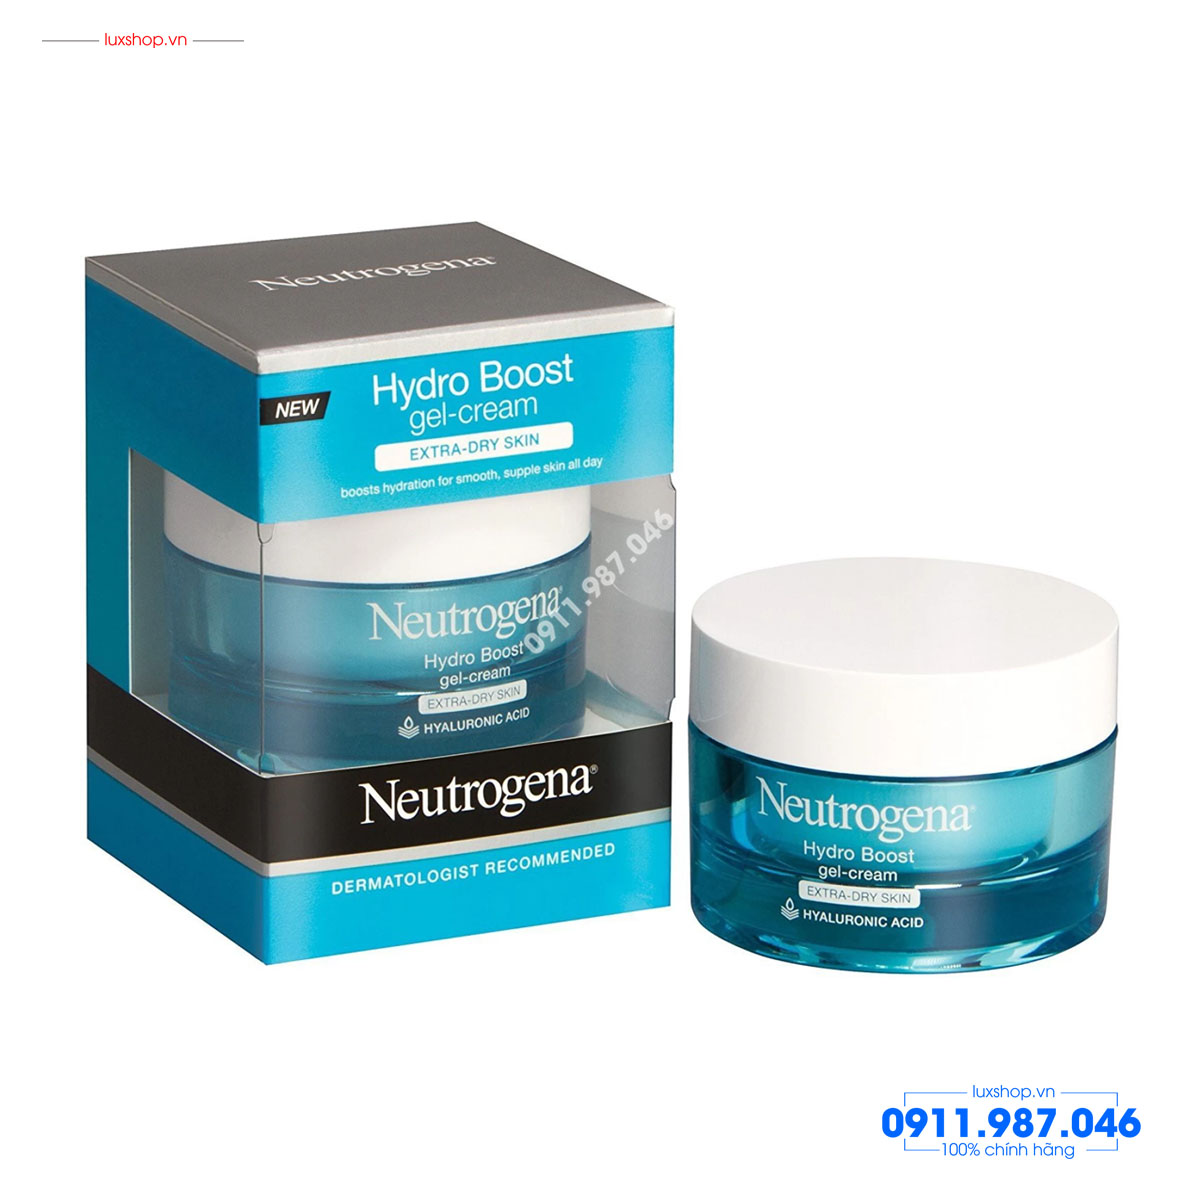 kem-duong-am-da-kho-neutrogena-hydro-boost-gel-cream-extra-dry-skin-chinh-hang-my-37395